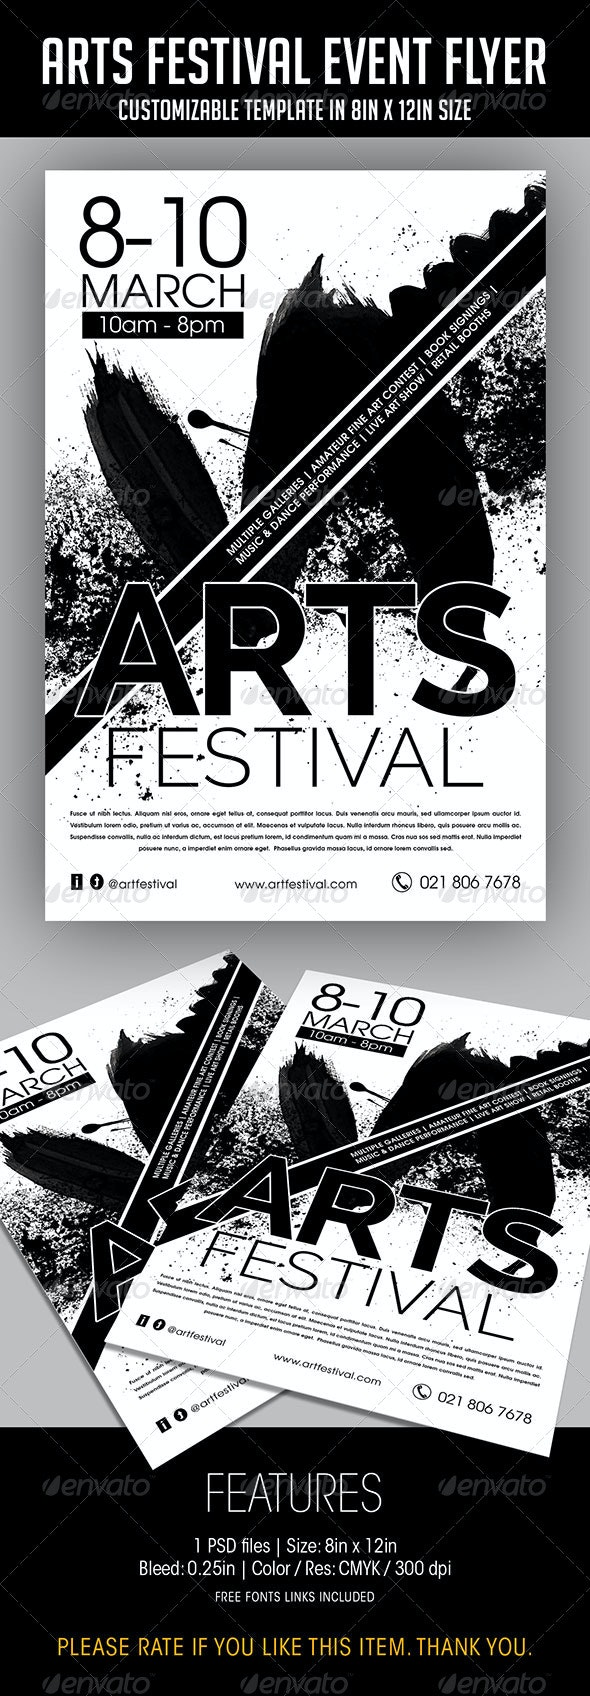 Arts Festival Event Flyer - Events Flyers